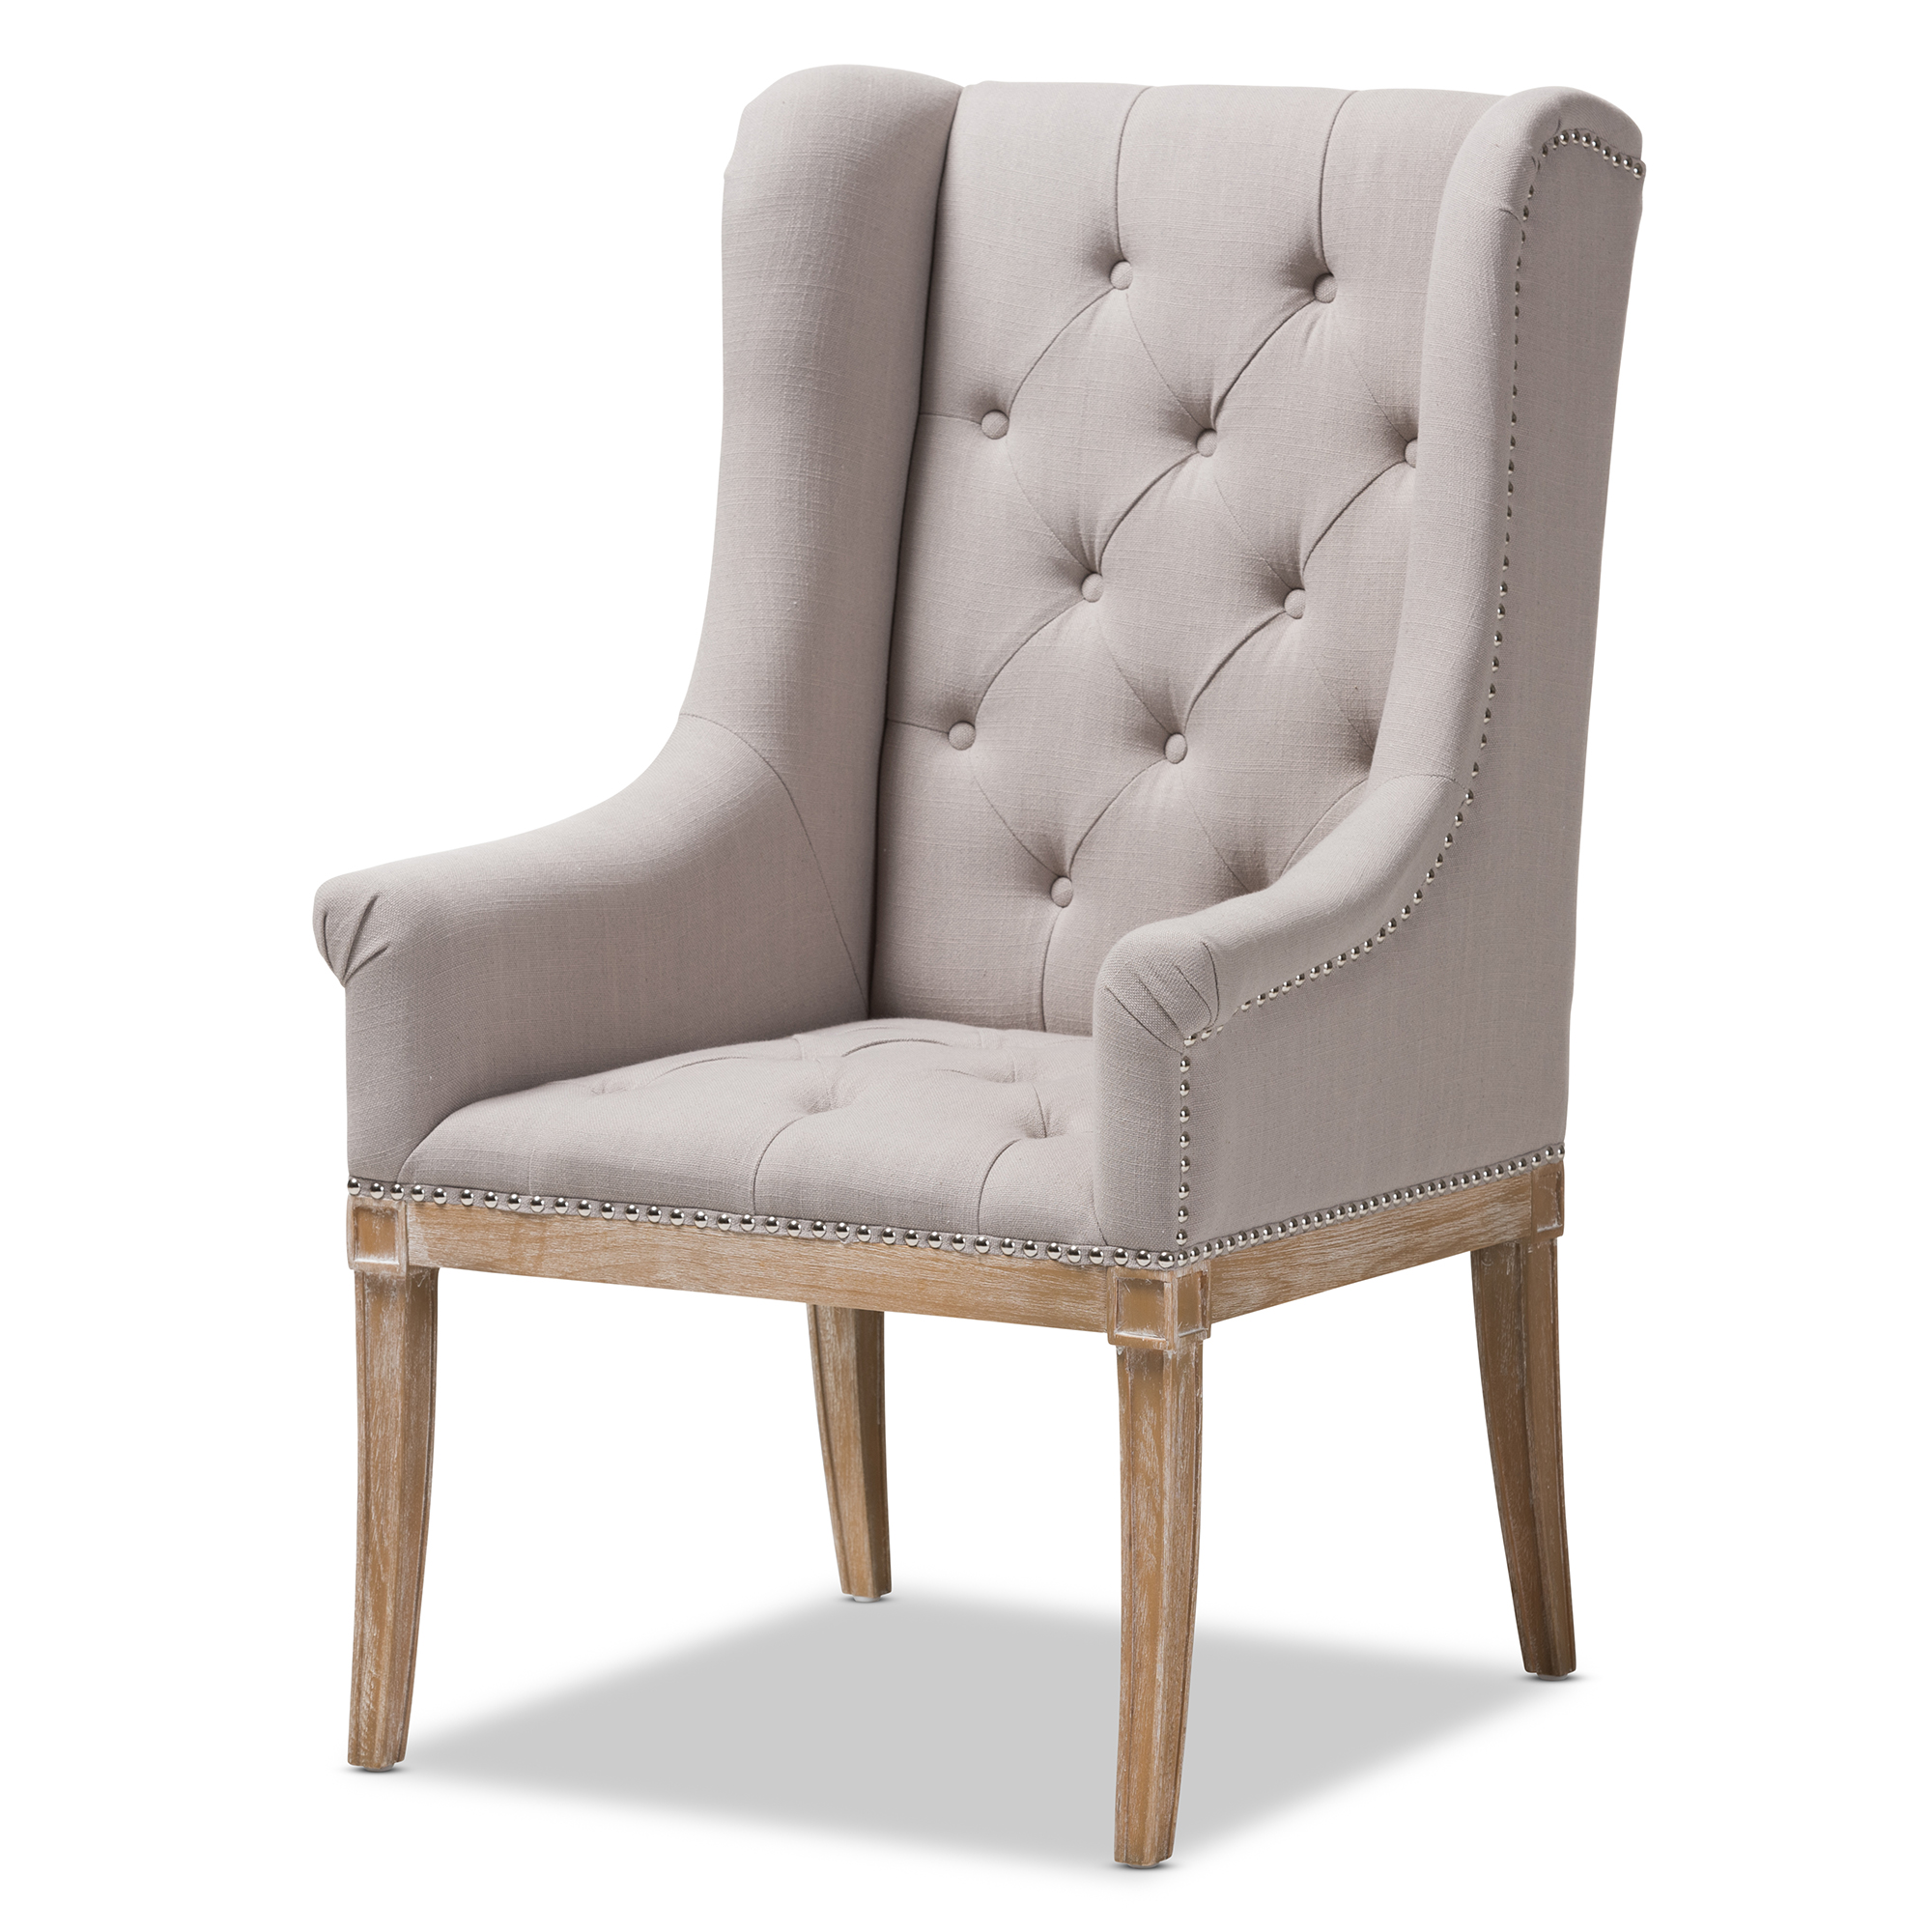 Baxton Studio Cedulie French Provincial Beige Fabric Upholstered  Whitewashed Oak Lounge Chair